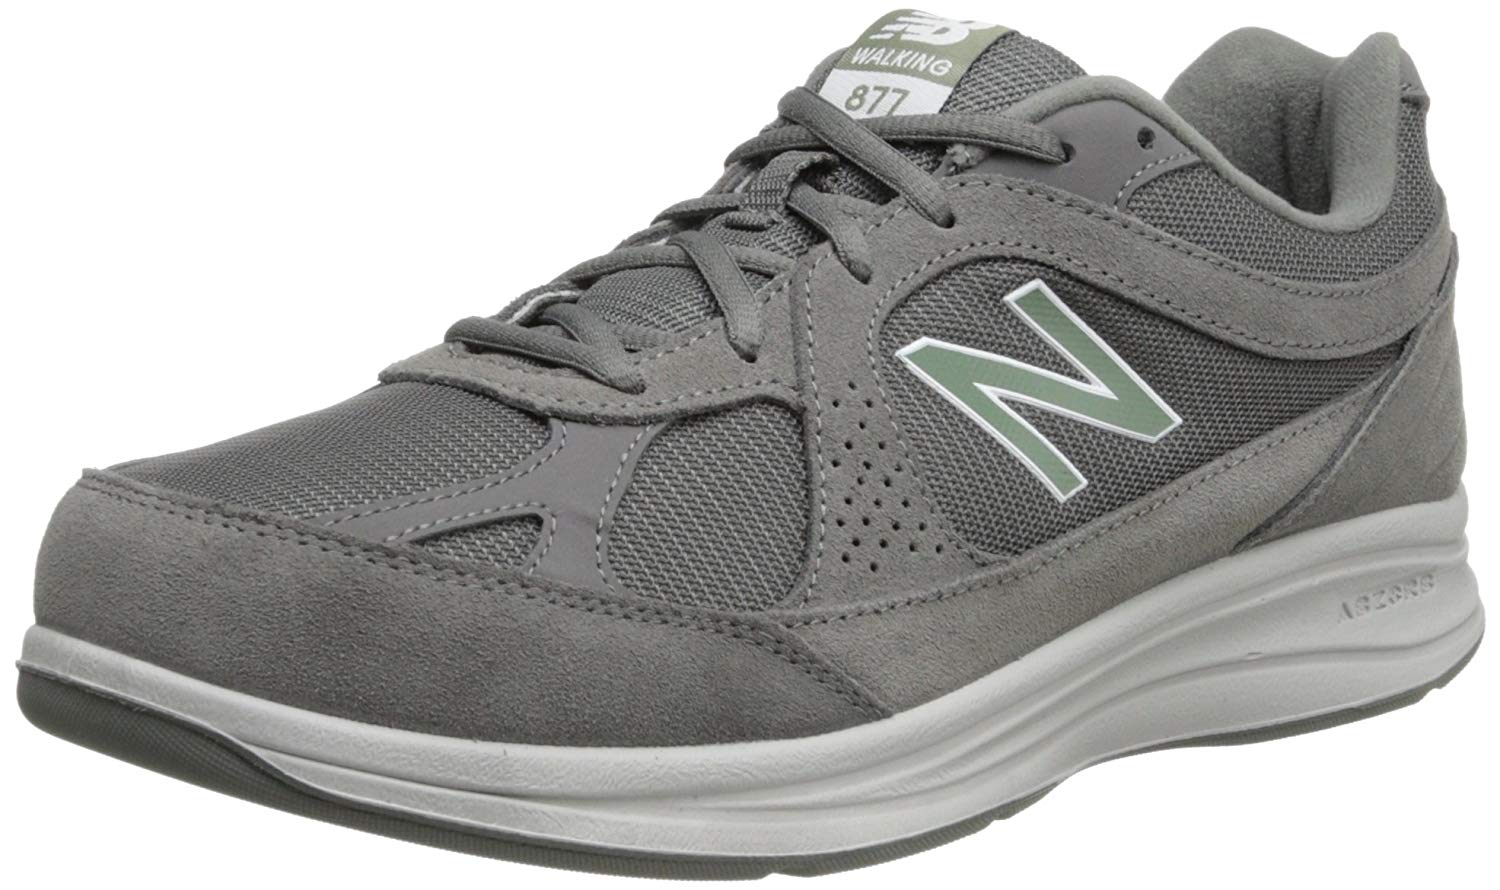 New Balance Men's MW877 Walking Shoe angle